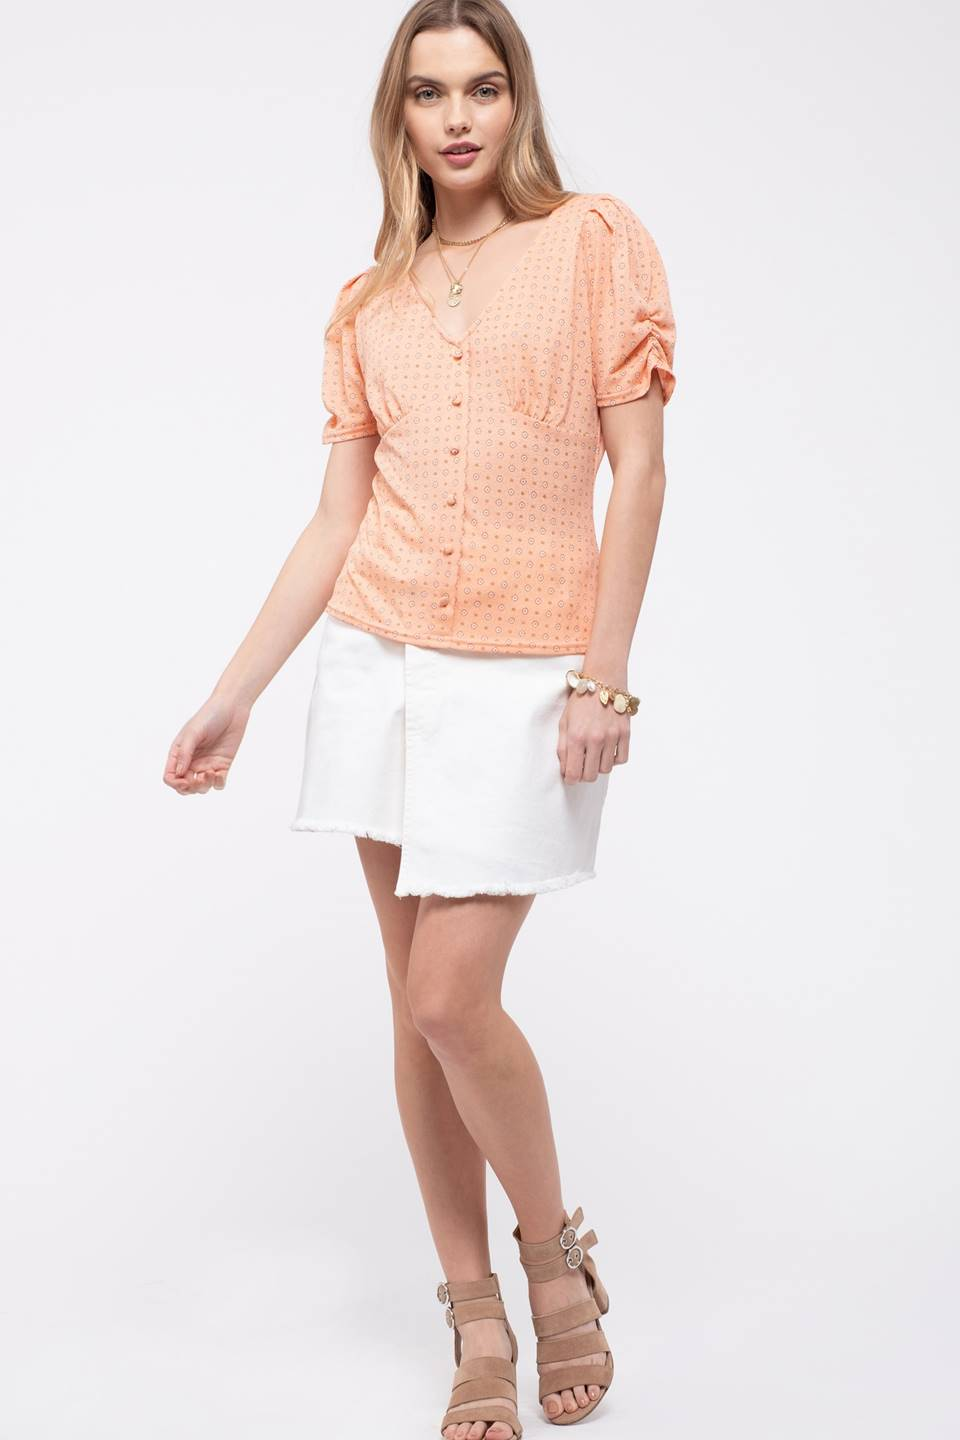 V-NECK DRAPED SLEEVE BUTTON DOWN TOP